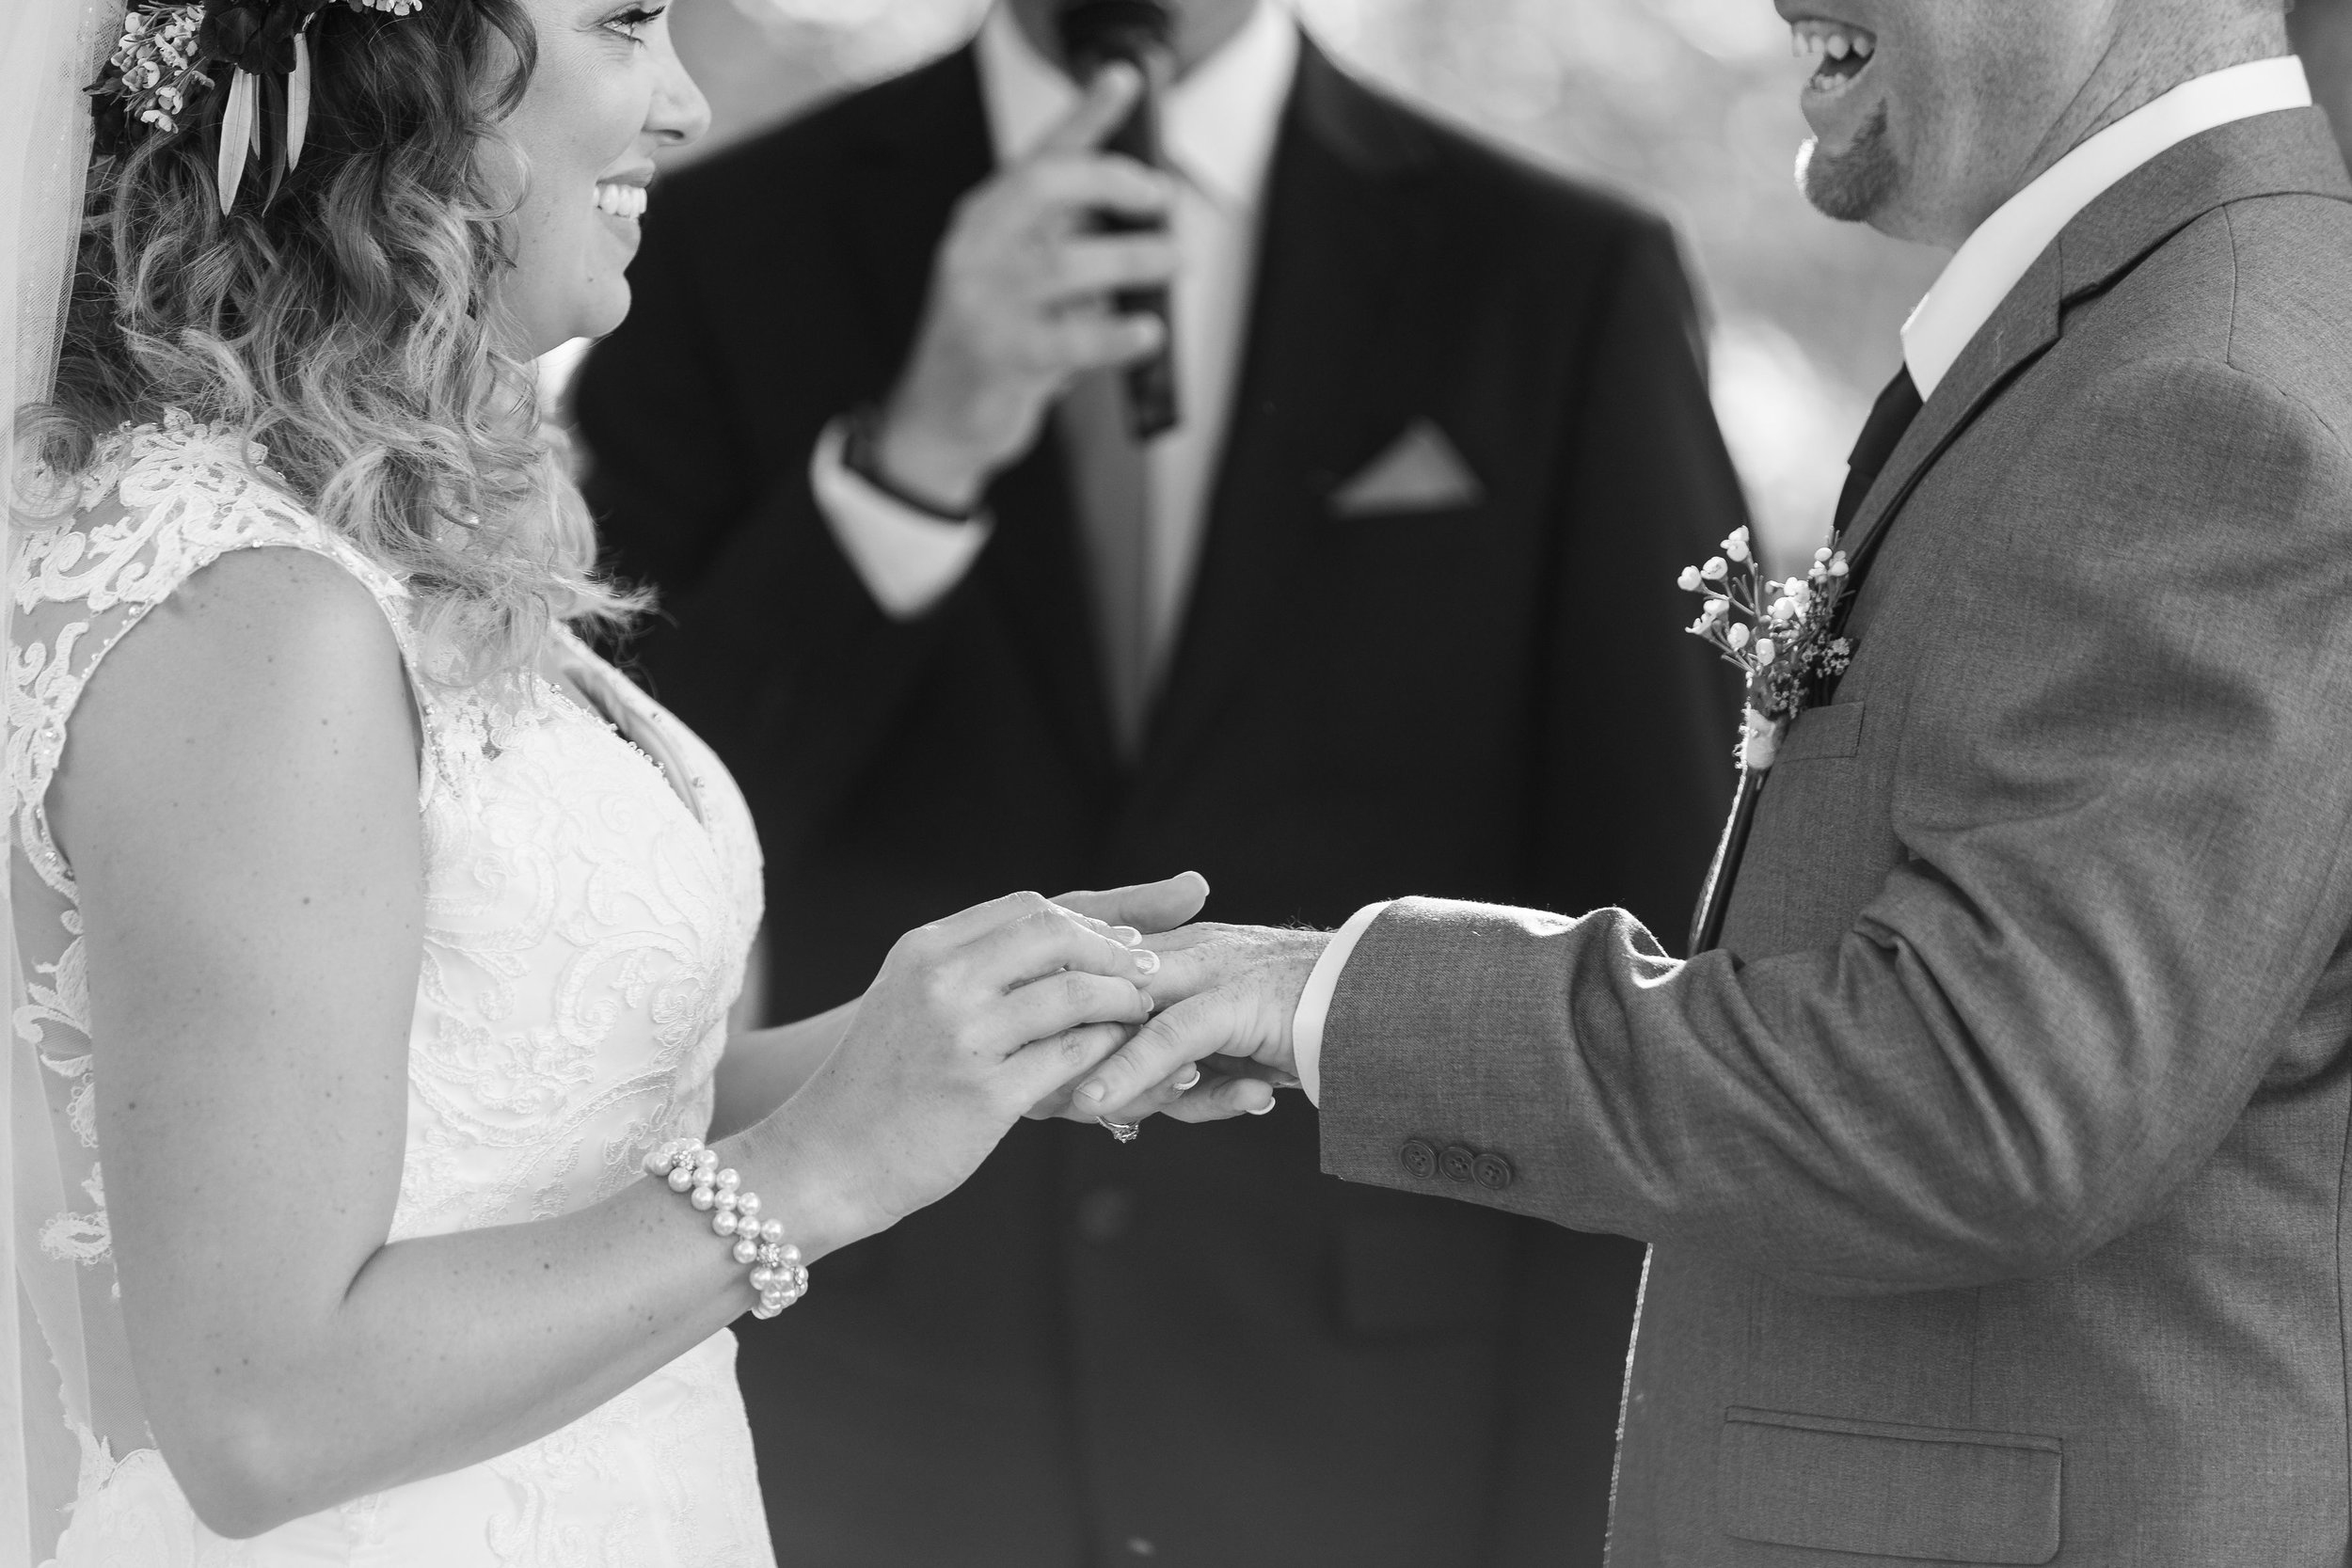 Bride putting ring on Groom at Wedding Ceremony.jpg